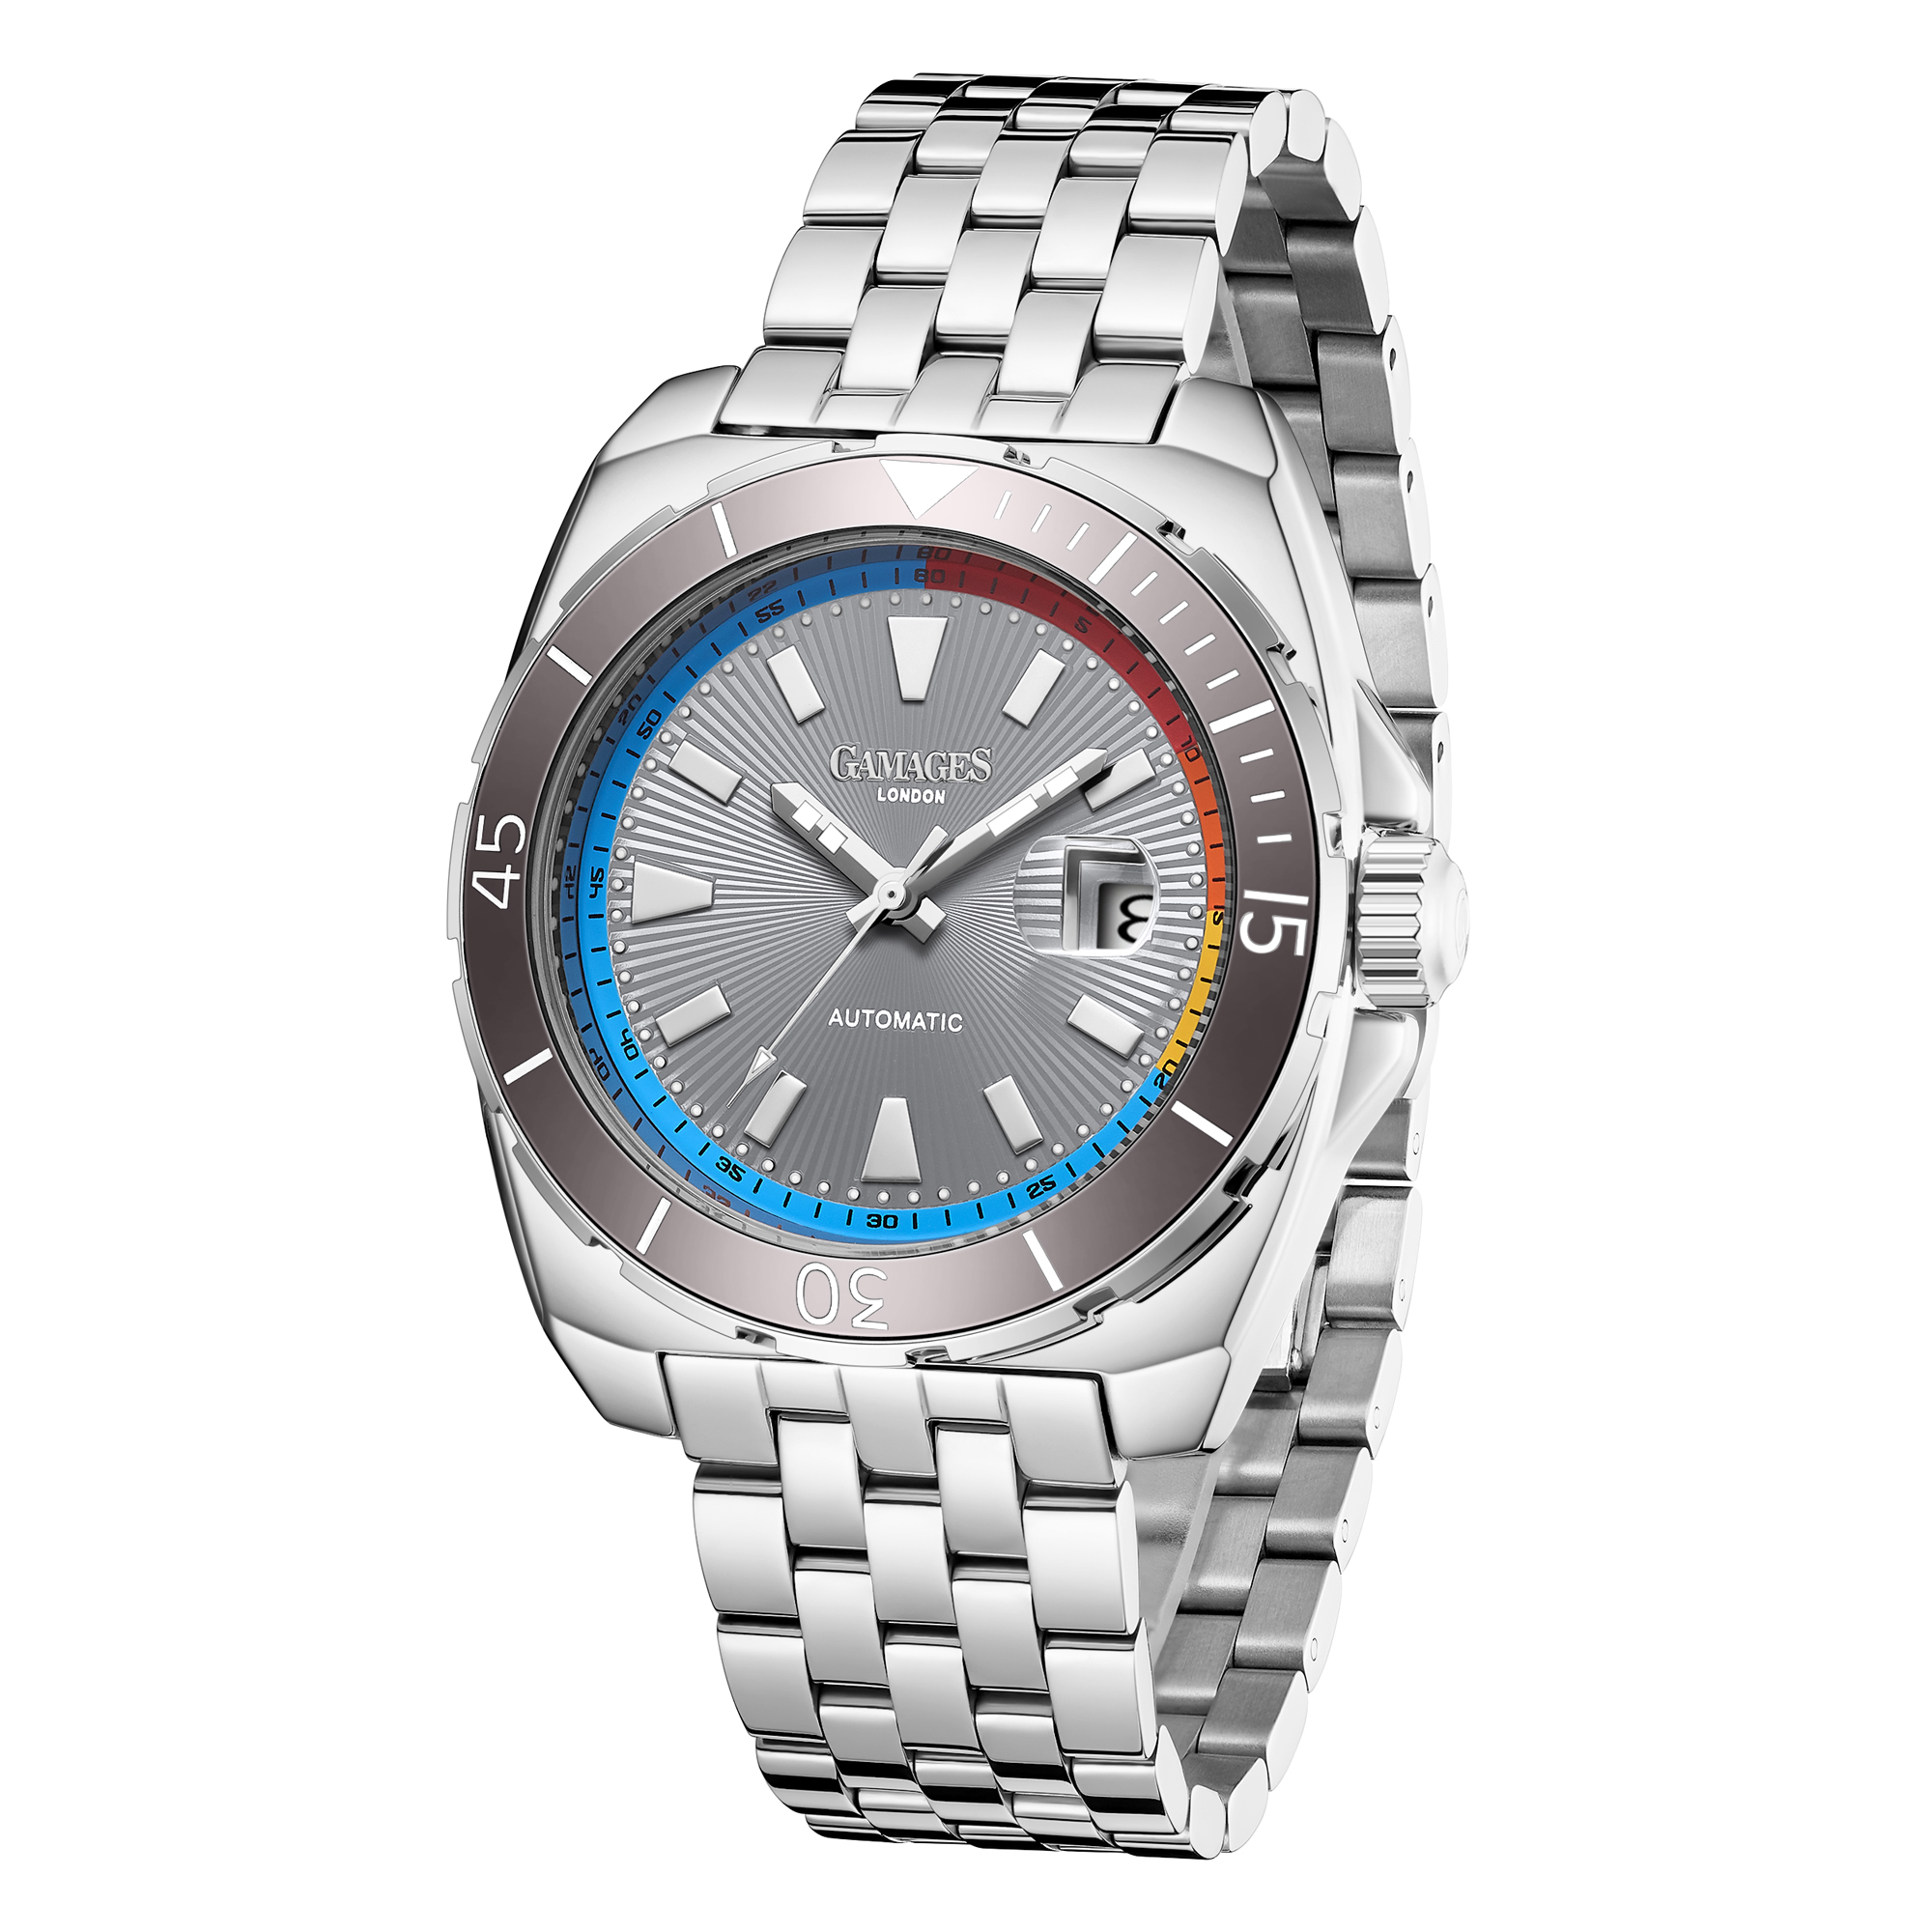 Limited Edition Hand Assembled GAMAGES Regal Automatic Steel – 5 Year Warranty & Free Delivery - Image 3 of 5